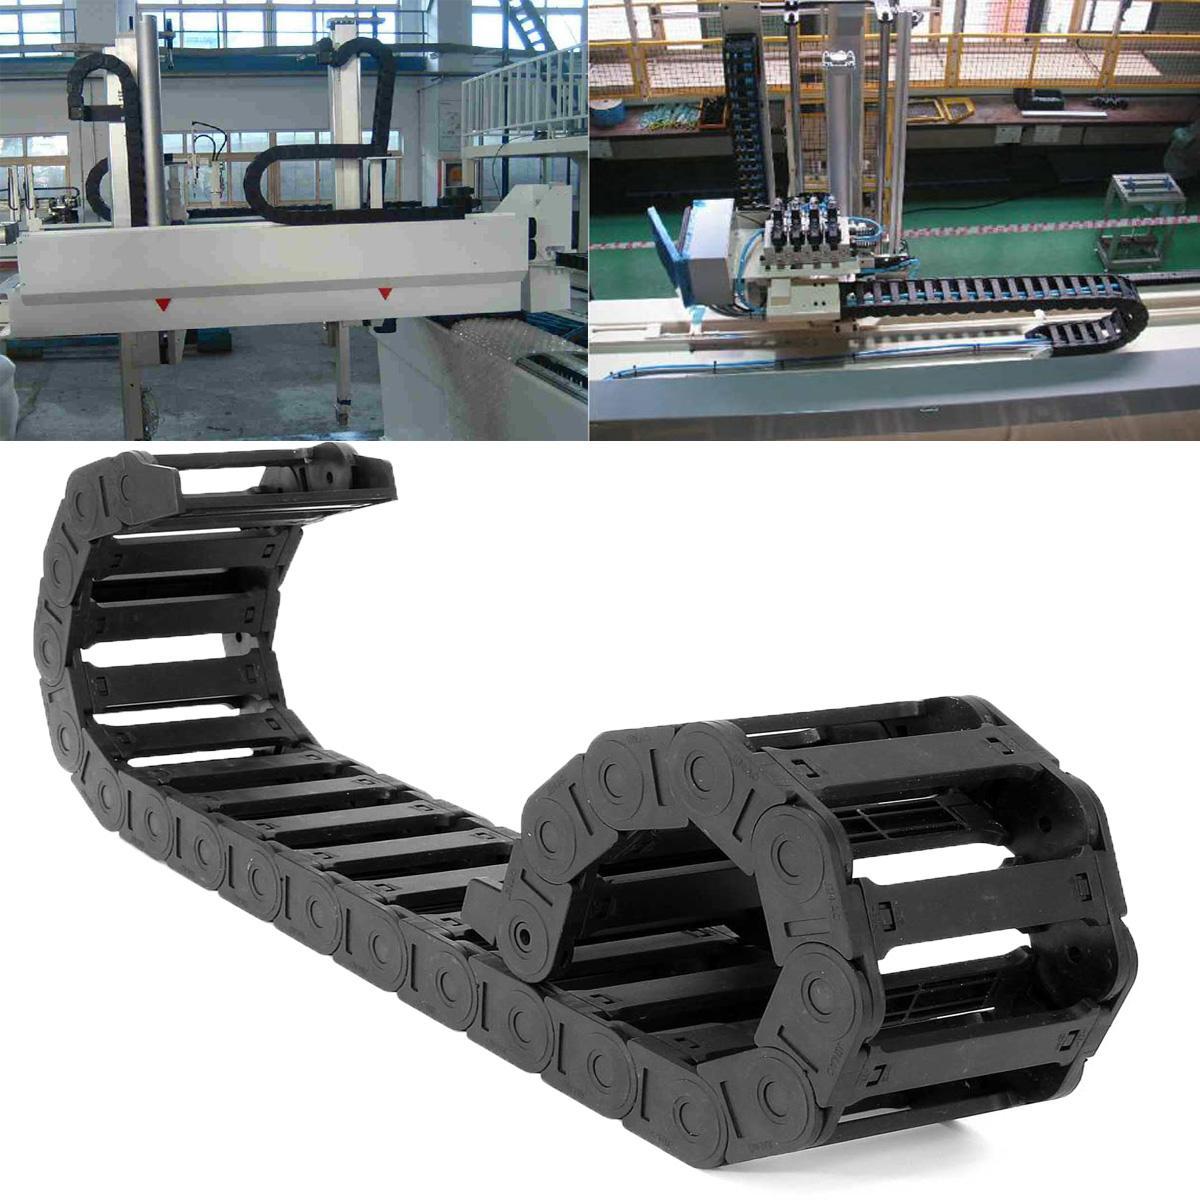 1000mm-cable-drag-chain-wire-carrier-25x77mm-reinforced-nylon-pa66-chains-for-cnc-router-machine-tools